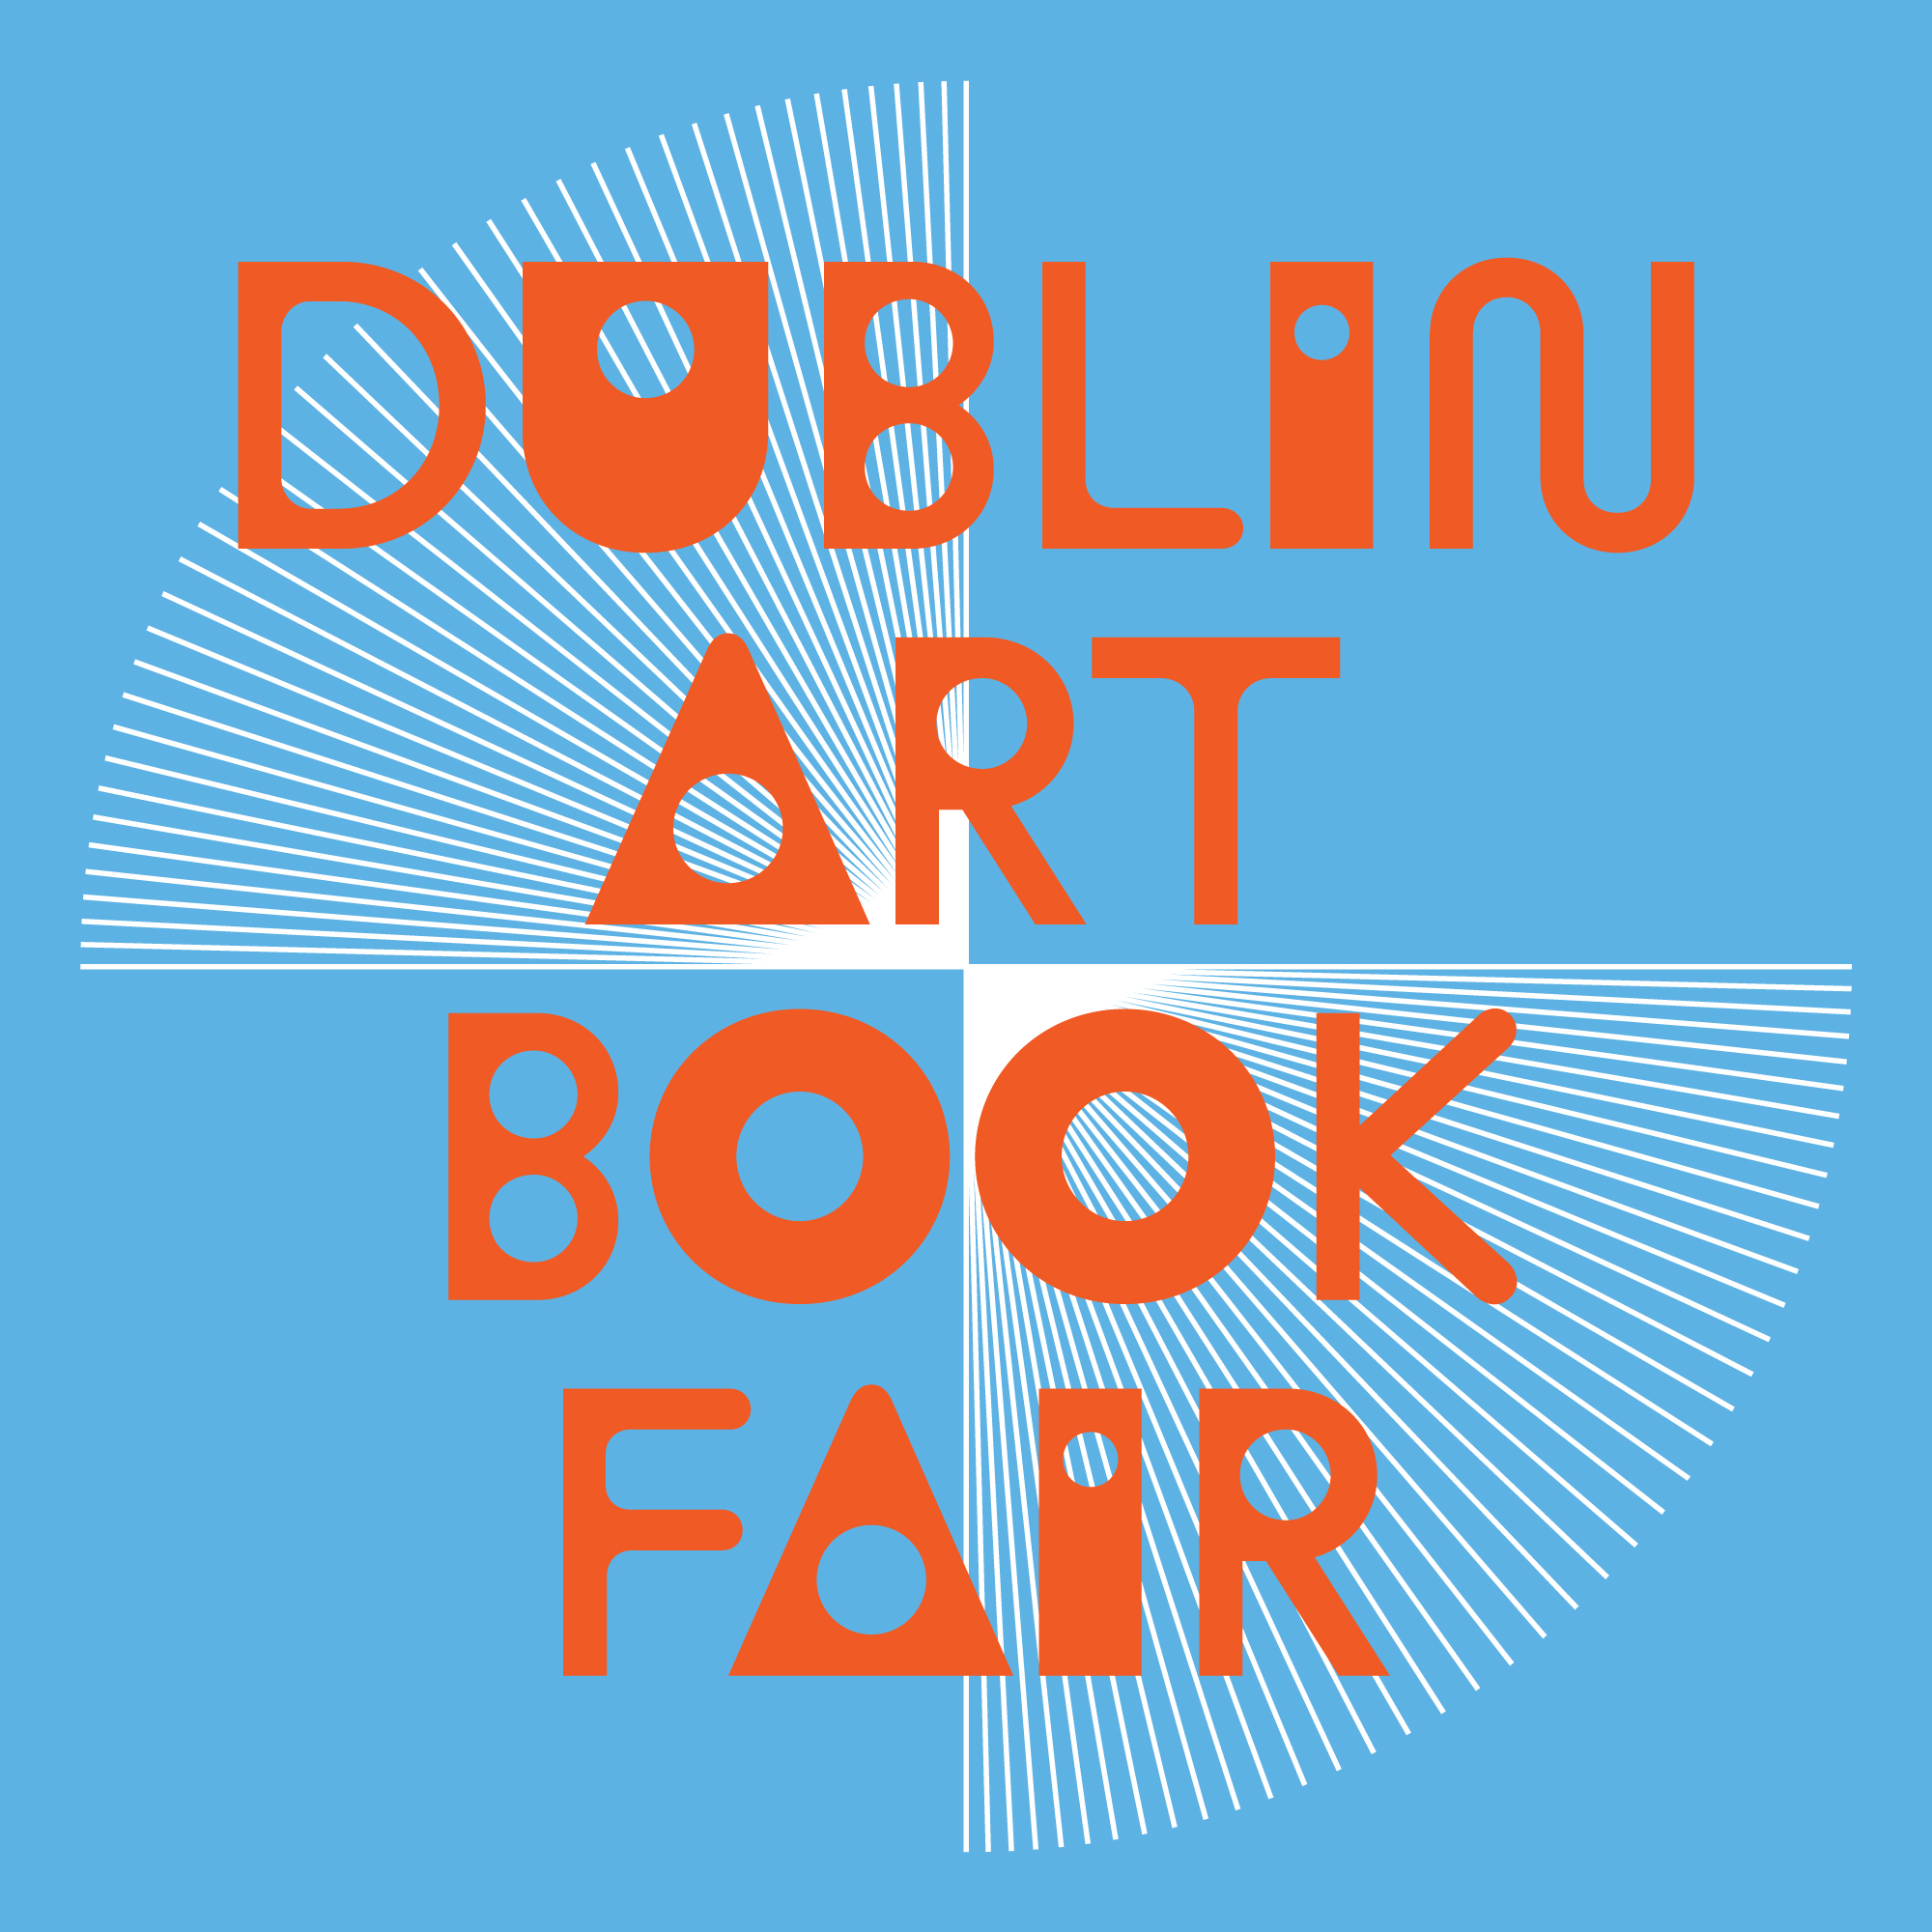 Cover image: Dublin Art Book Fair 2020